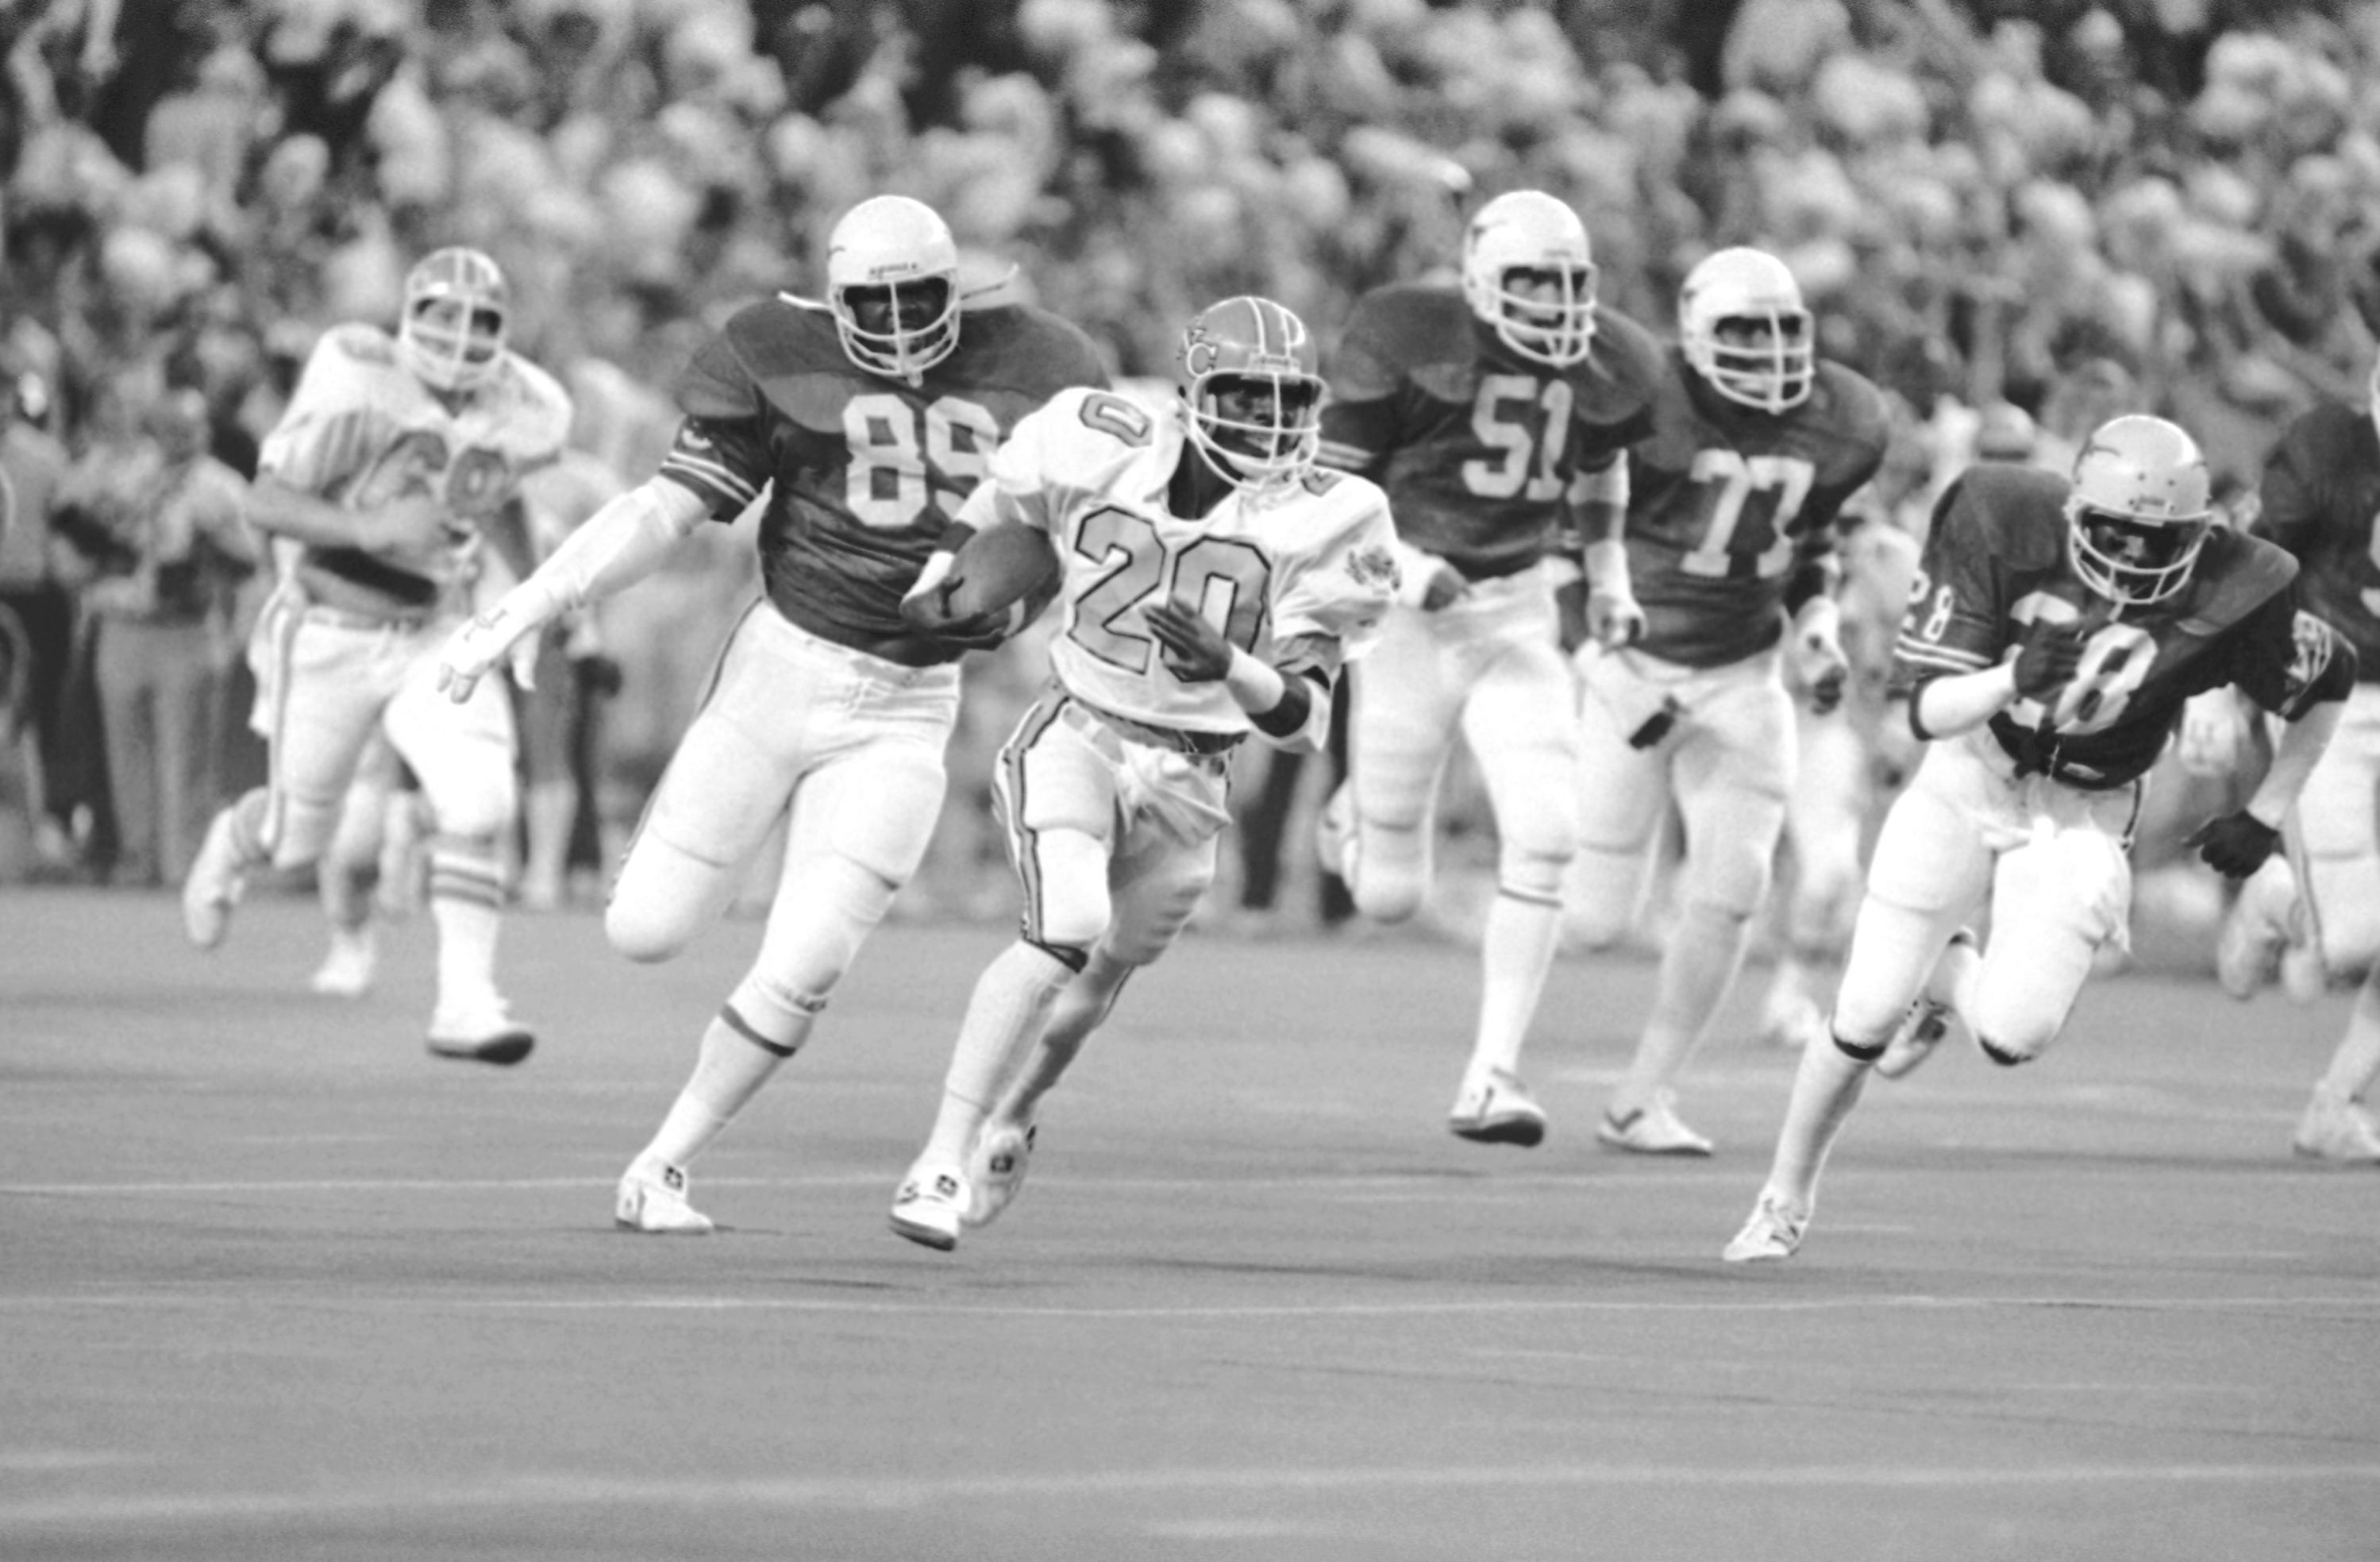 """Former Norfolk Lake Taylor High School running back Amos Lawrence (20), pictured here in the 1980 Bluebonnet Bowl against Texas, is one of the top 757 players in UNC football history. Nicknamed """"Famous Amos,"""" he's one of seven players in college football history to rush for 1,000 yards in four straight seasons and also holds UNC's all-time rushing yardage record."""